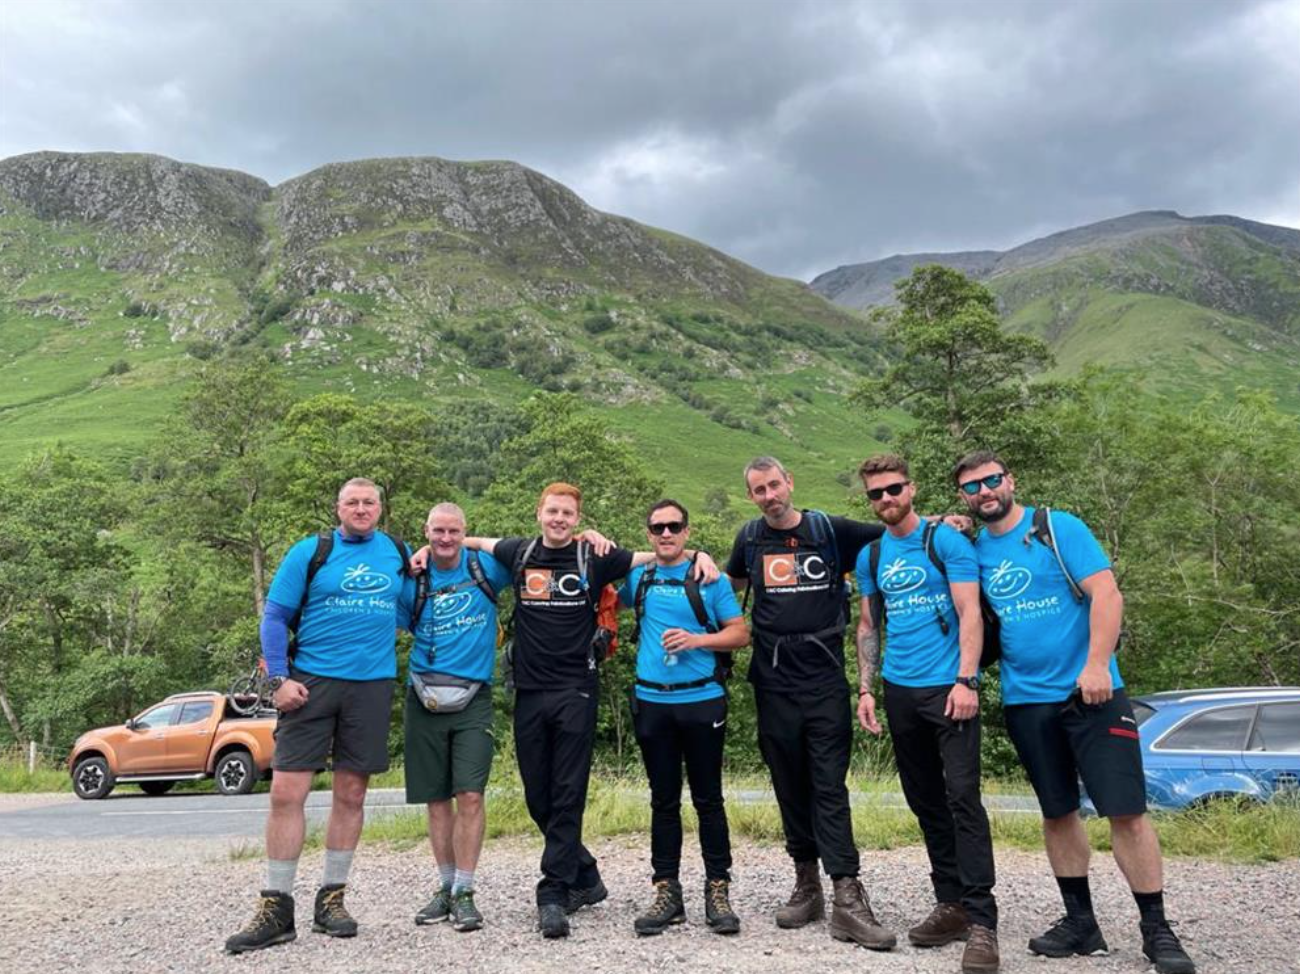 C&C Fabs completes Three Peaks Challenge for charity